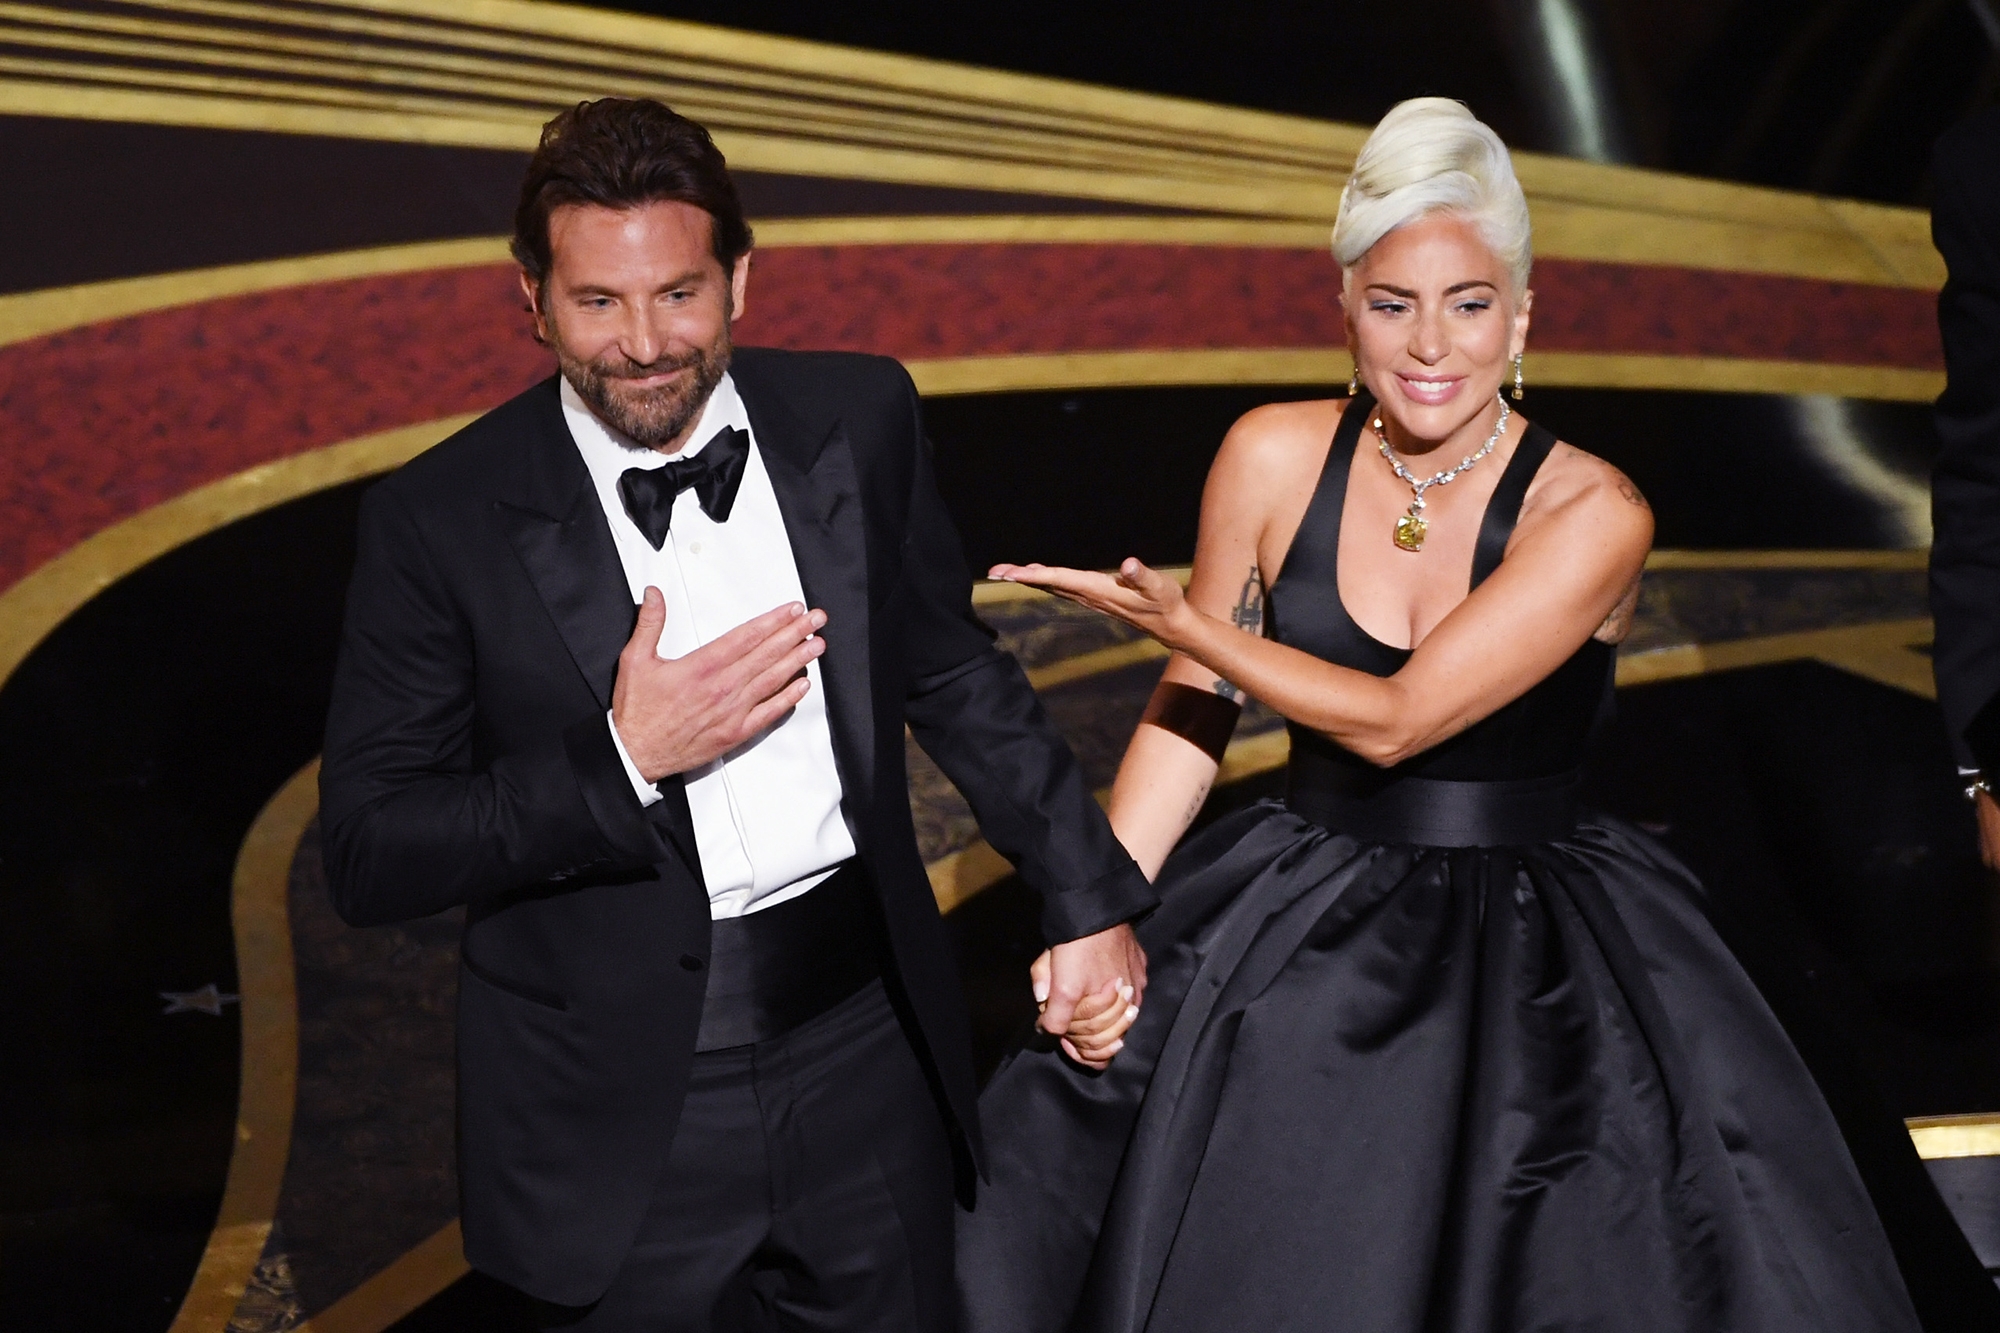 Mark Ronson Praised by Bradley Cooper and Lady Gaga in Documentary Trailer- A Star Is Born Reunion!